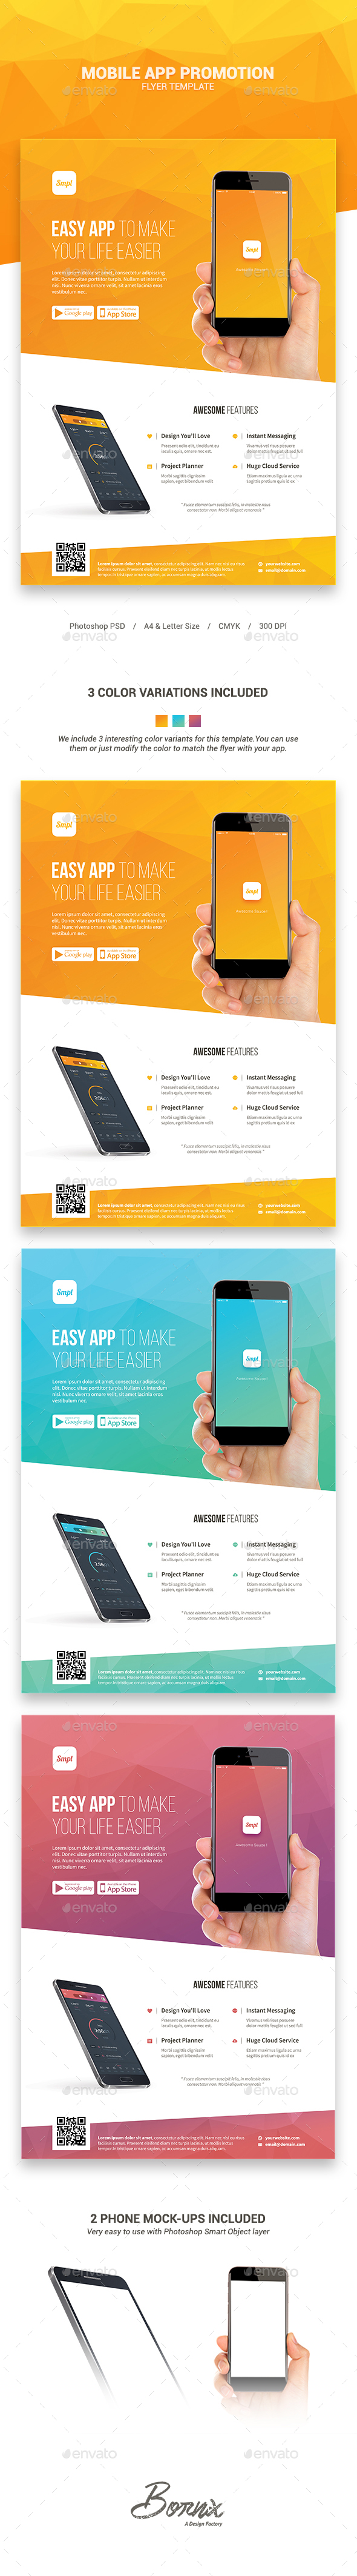 Mobile App Promotion Flyer Template - Commerce Flyers